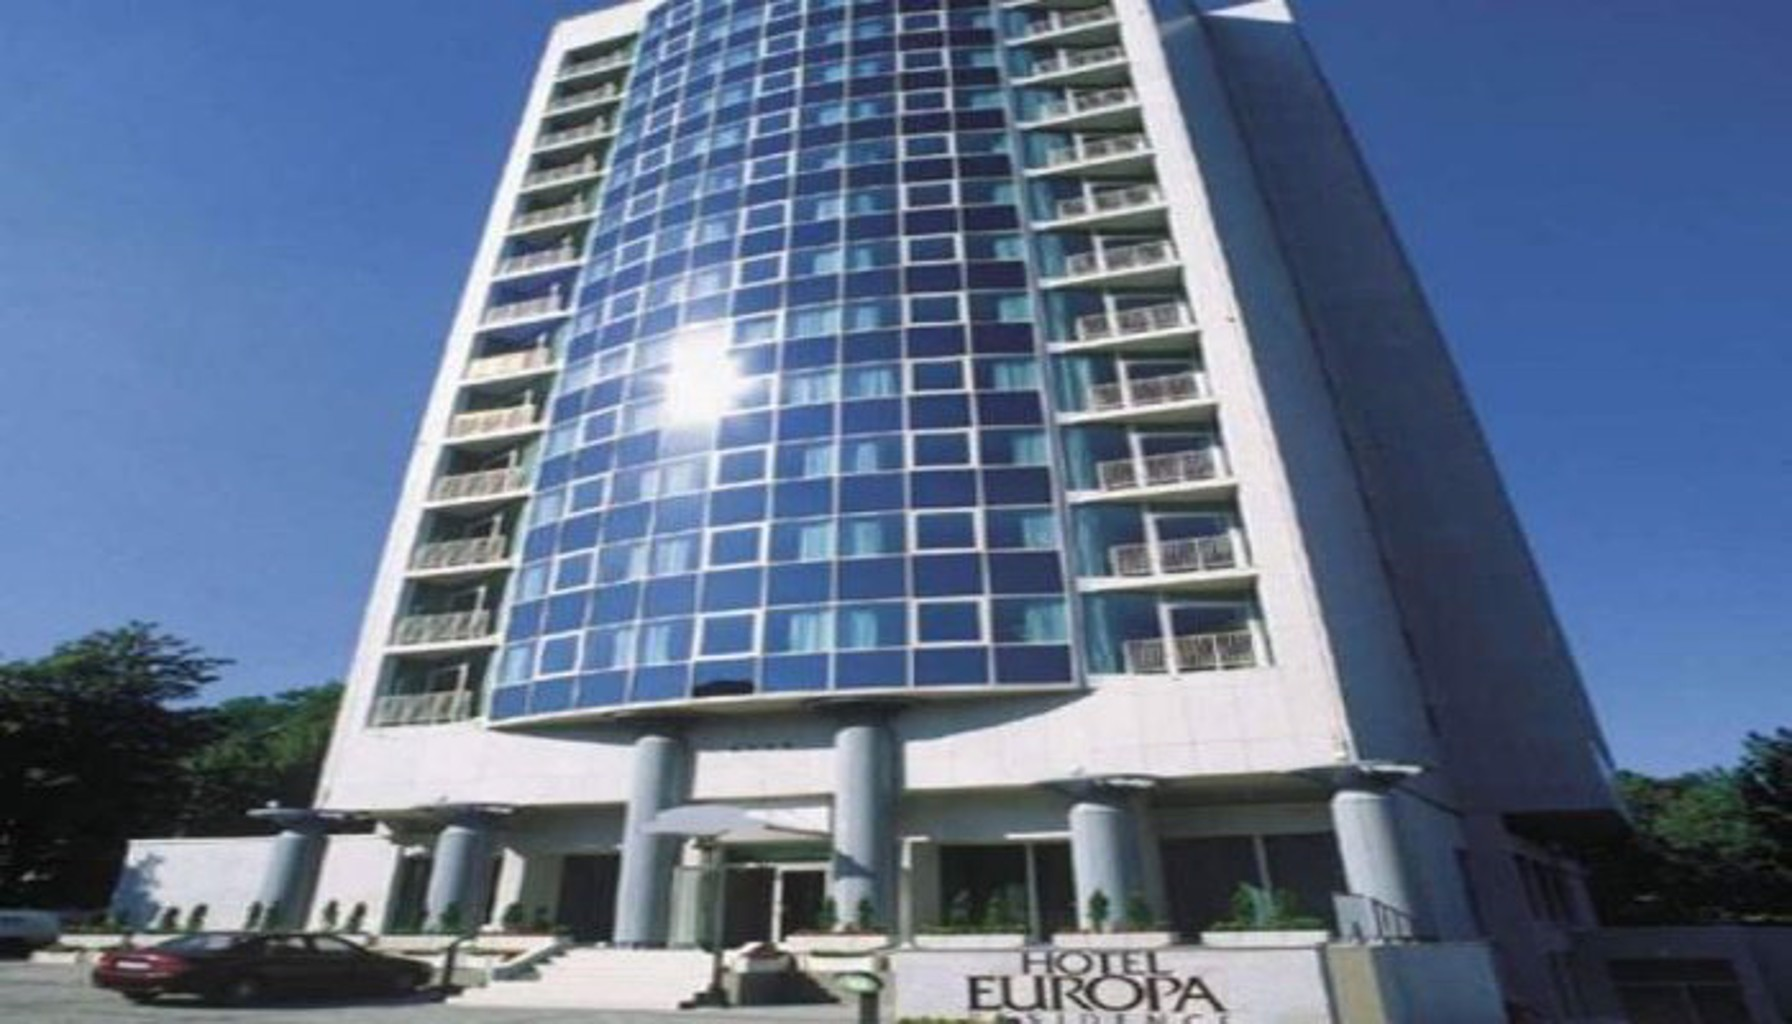 Europa Hotels & Congress Center Standard